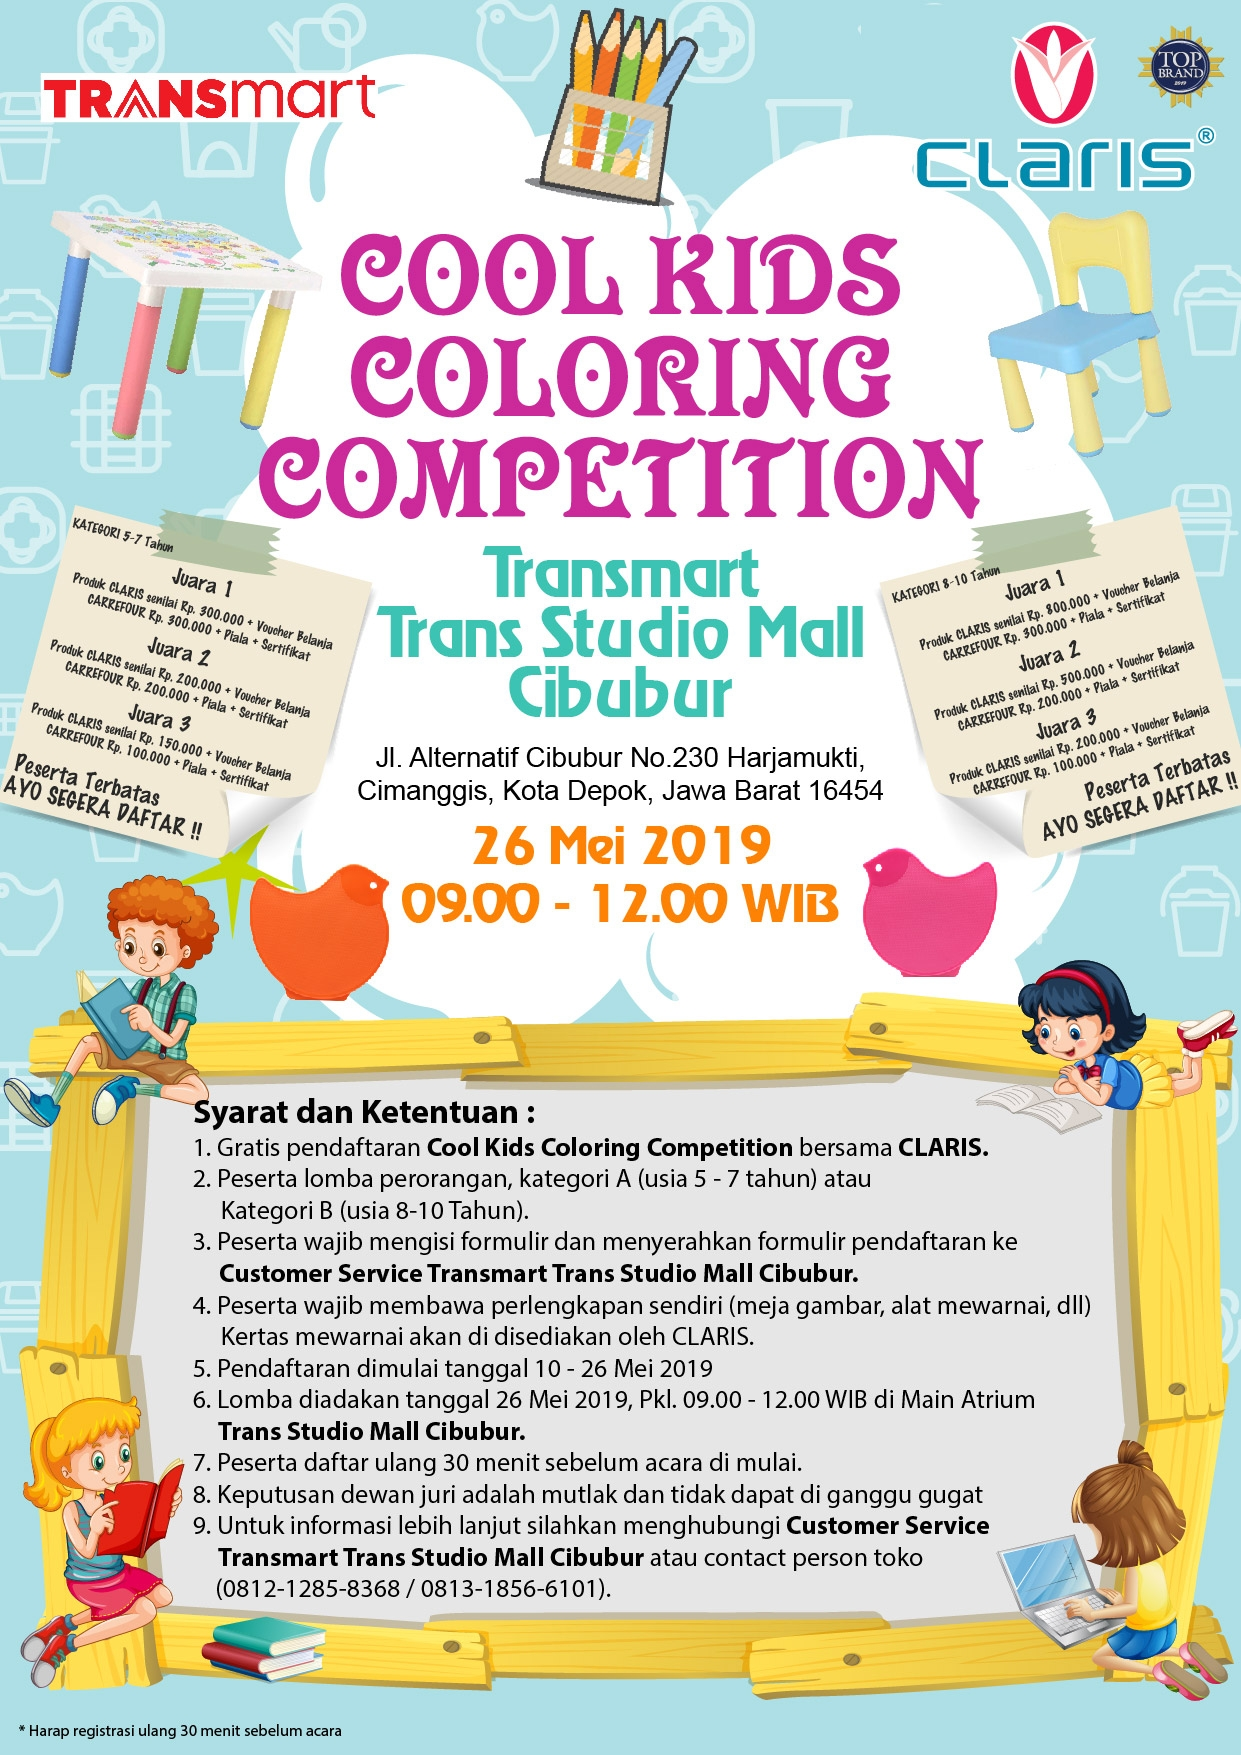 COOL KIDS COLORING COMPETITION